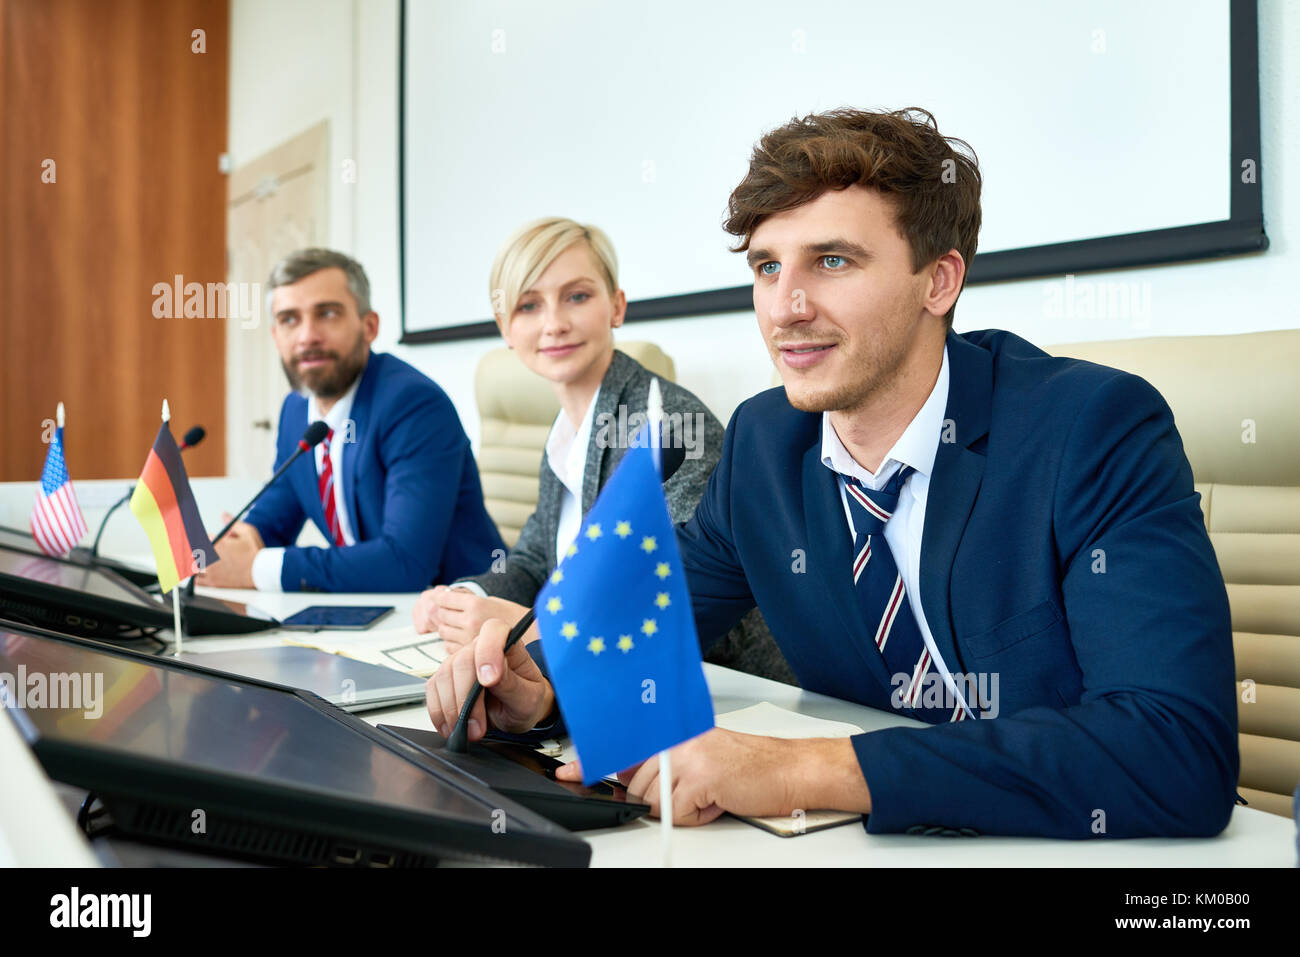 Productive Discussion of Political Forum Members - Stock Image